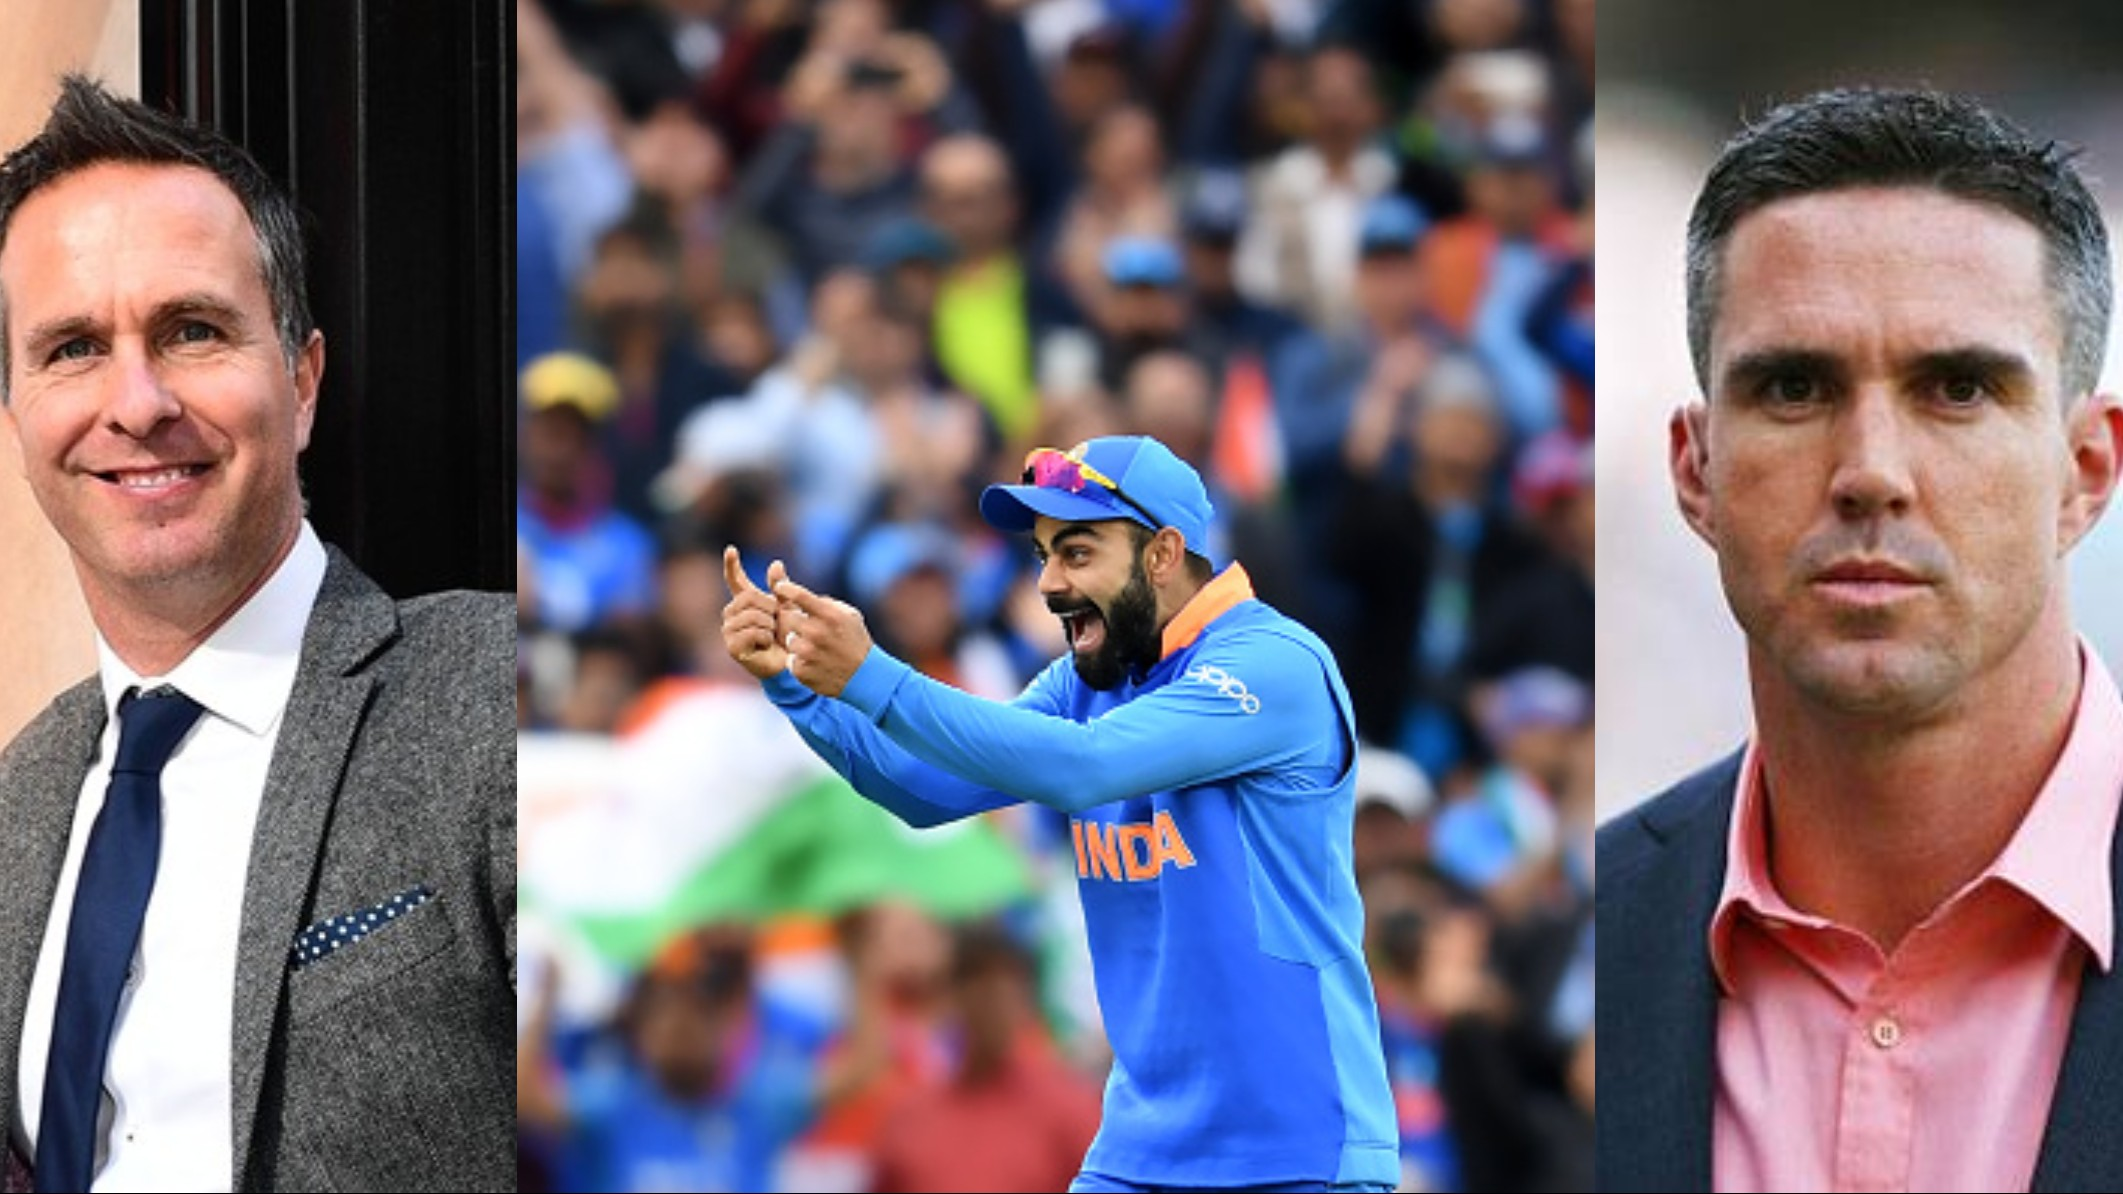 CWC 2019: Cricket fraternity lauds Team India as they defeat Australia by 36 runs